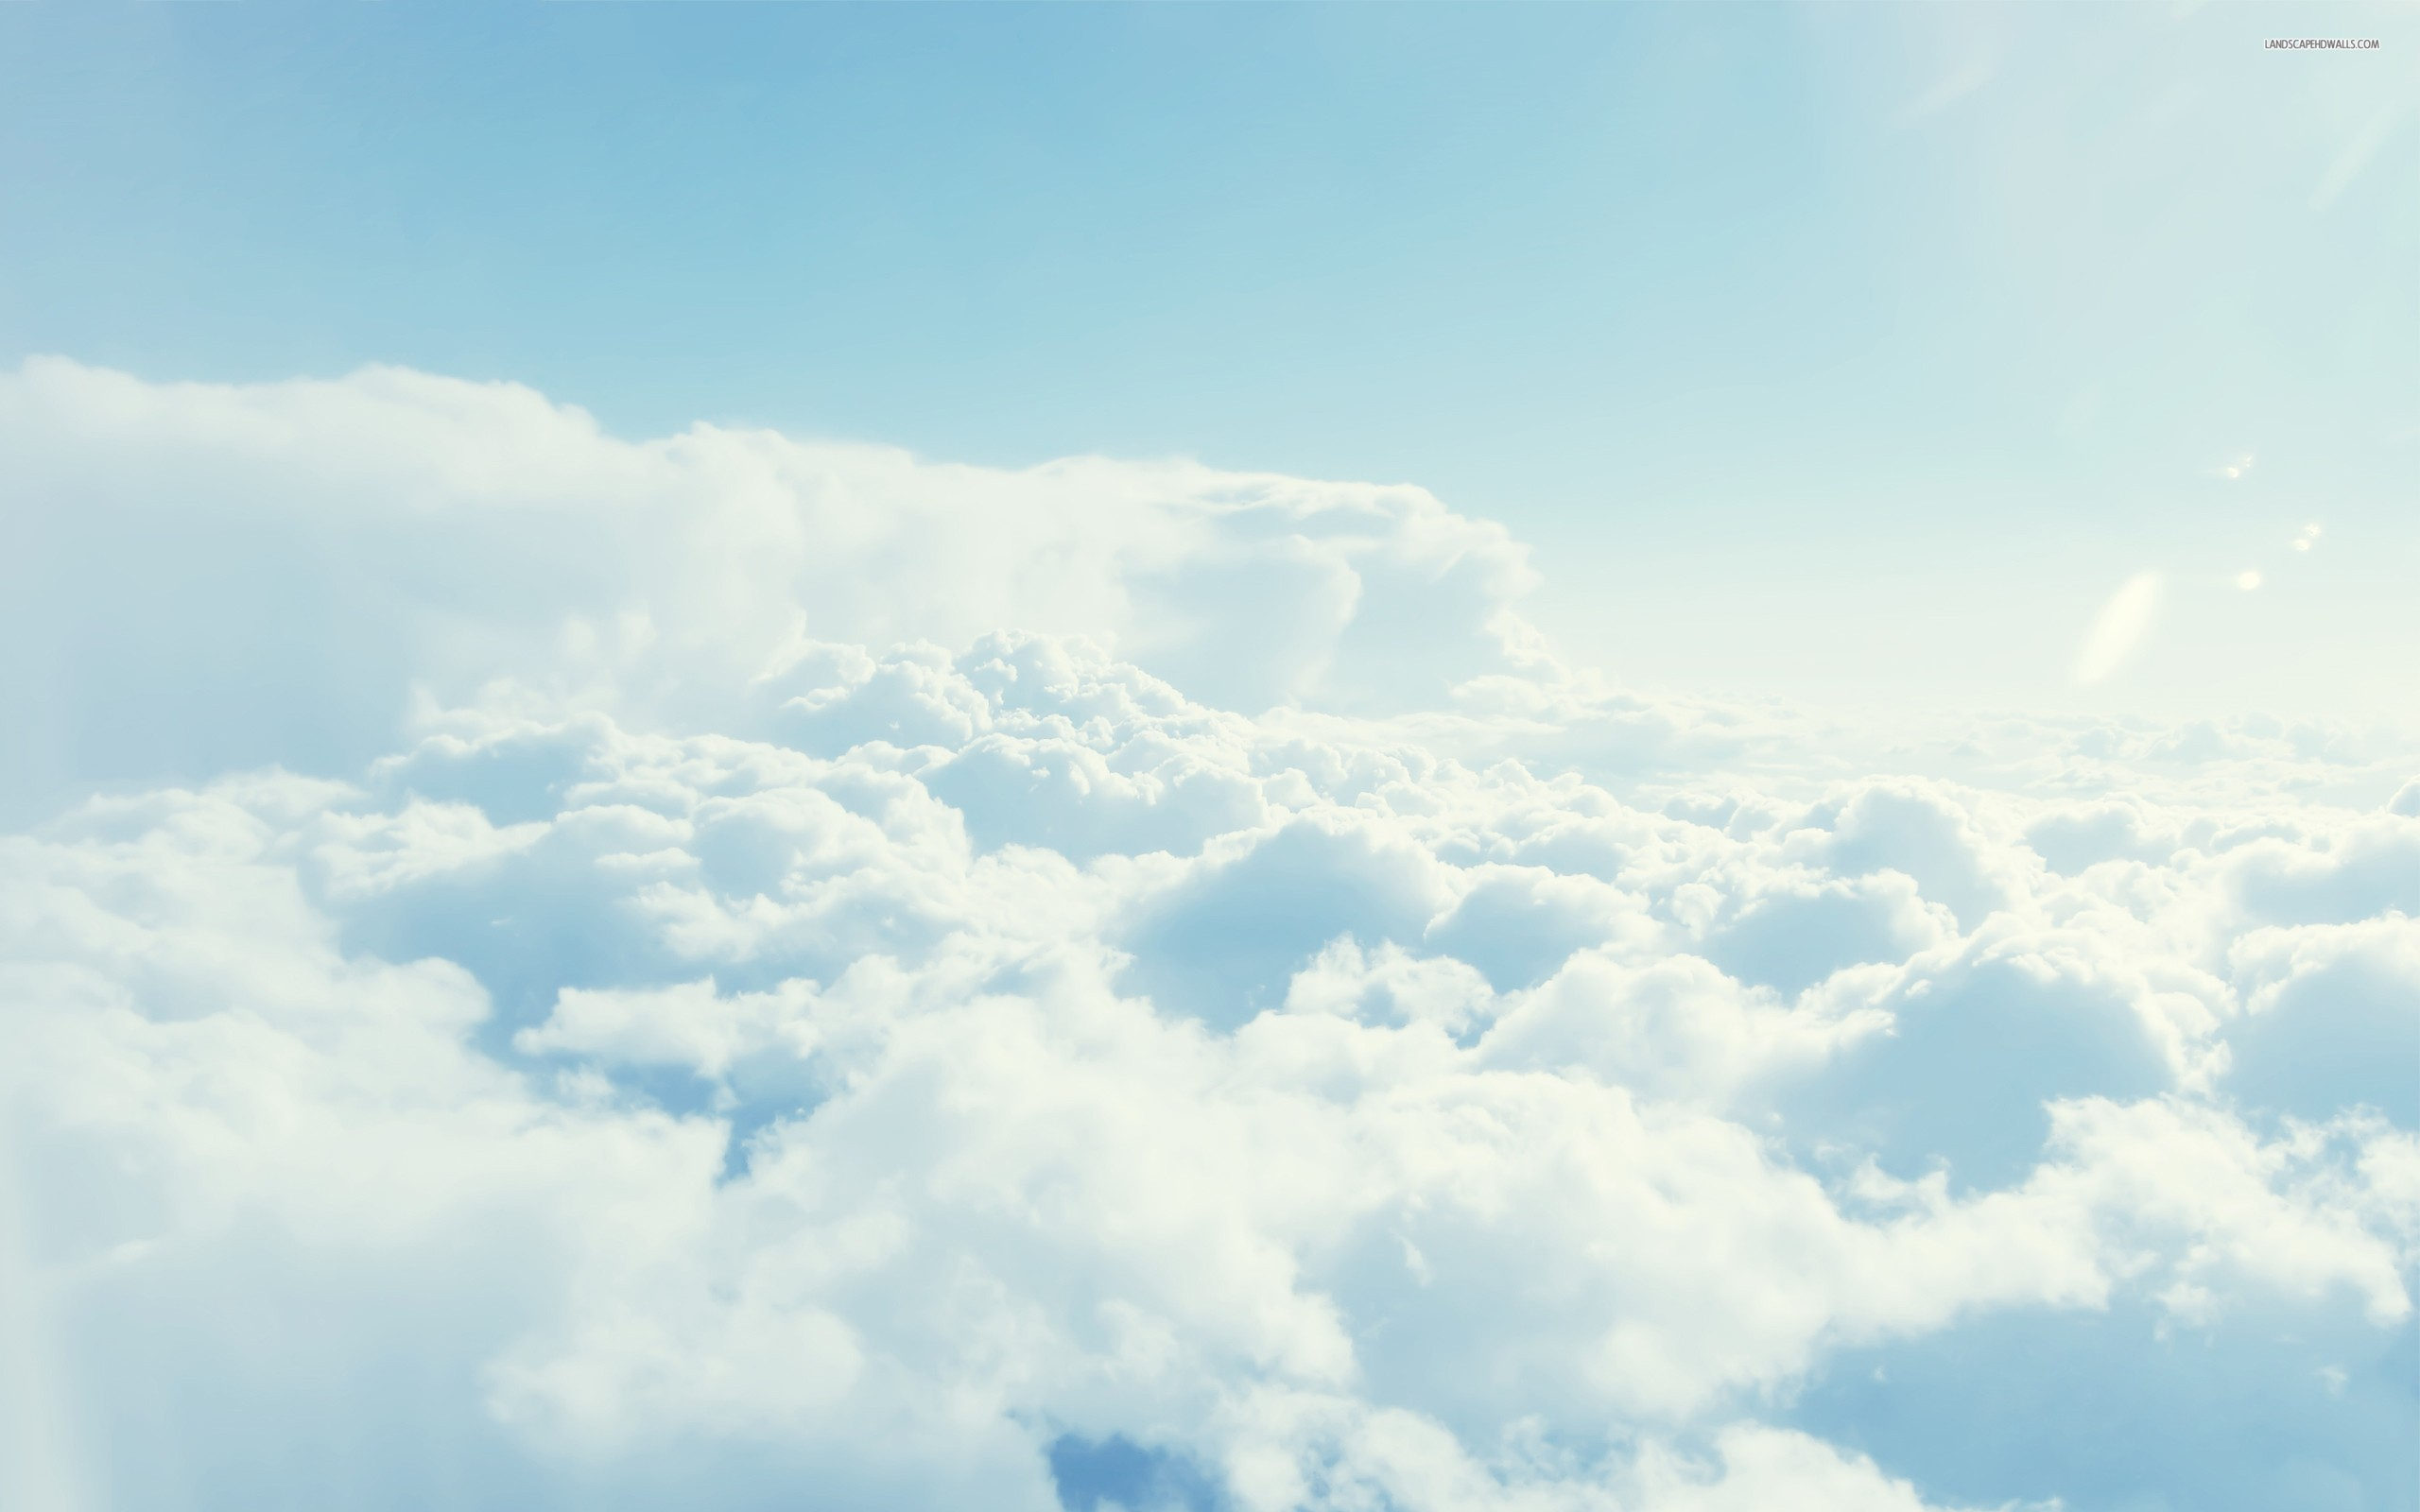 Sky Clouds Wallpapers Full Hd Wallpaper Search 2560x1600PX ~ Sky .